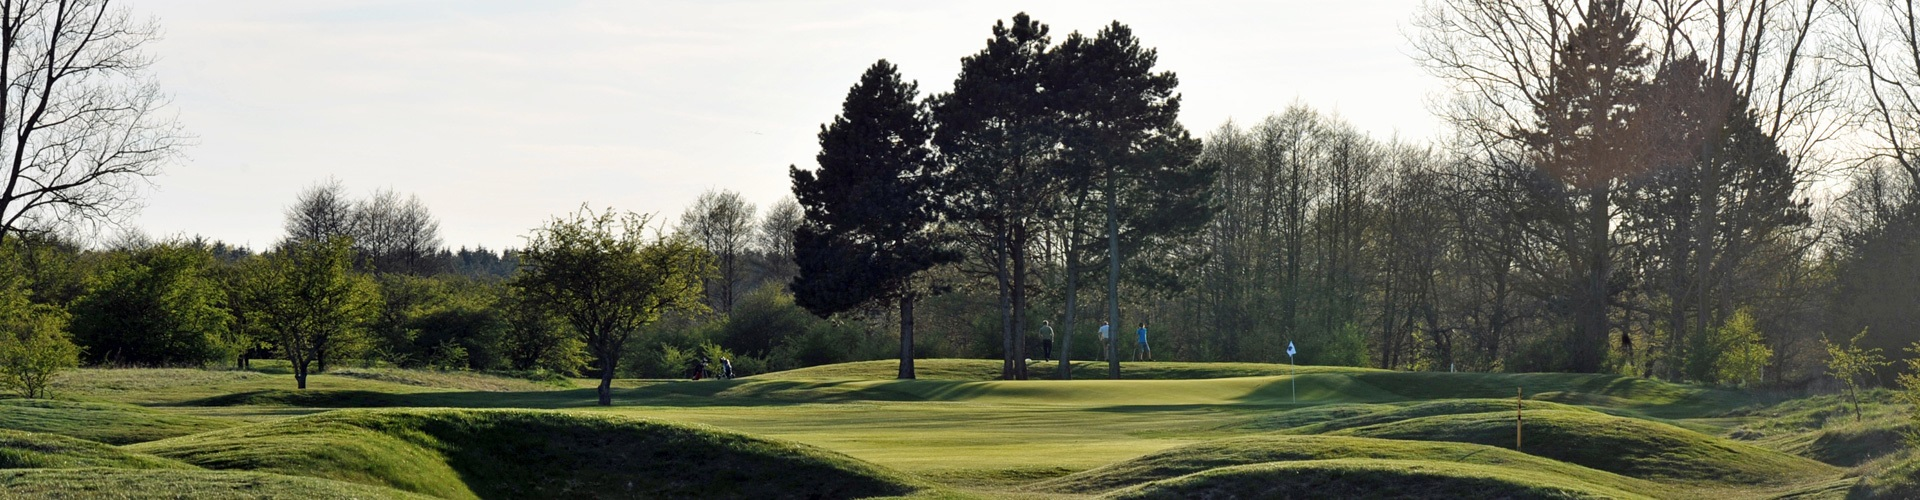 Overview of golf course named Ystad Golfklubb